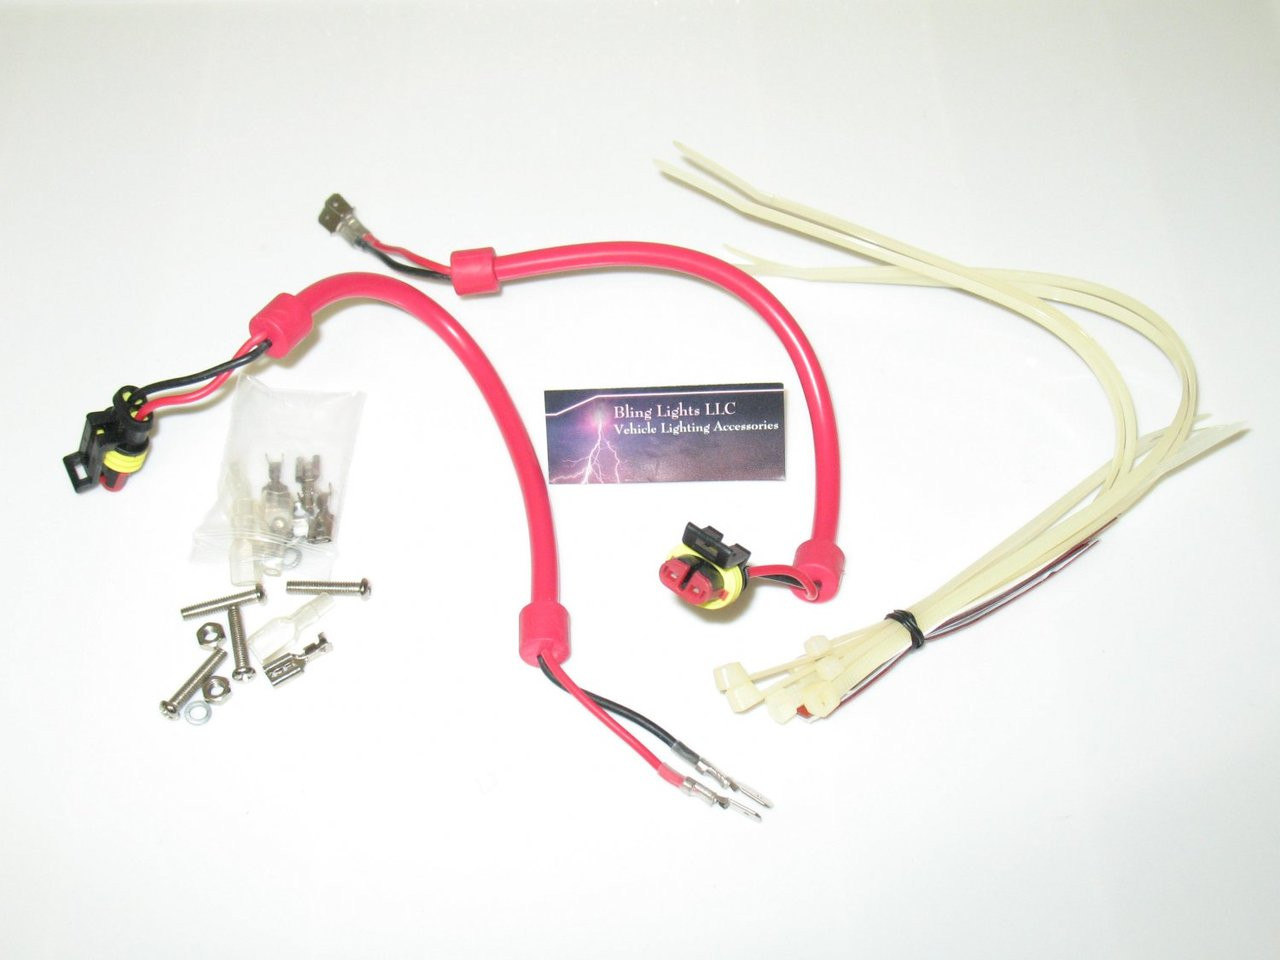 small resolution of h1 h3 h7 hid conversion kit universal ballast harness wiring accessories blinglights com